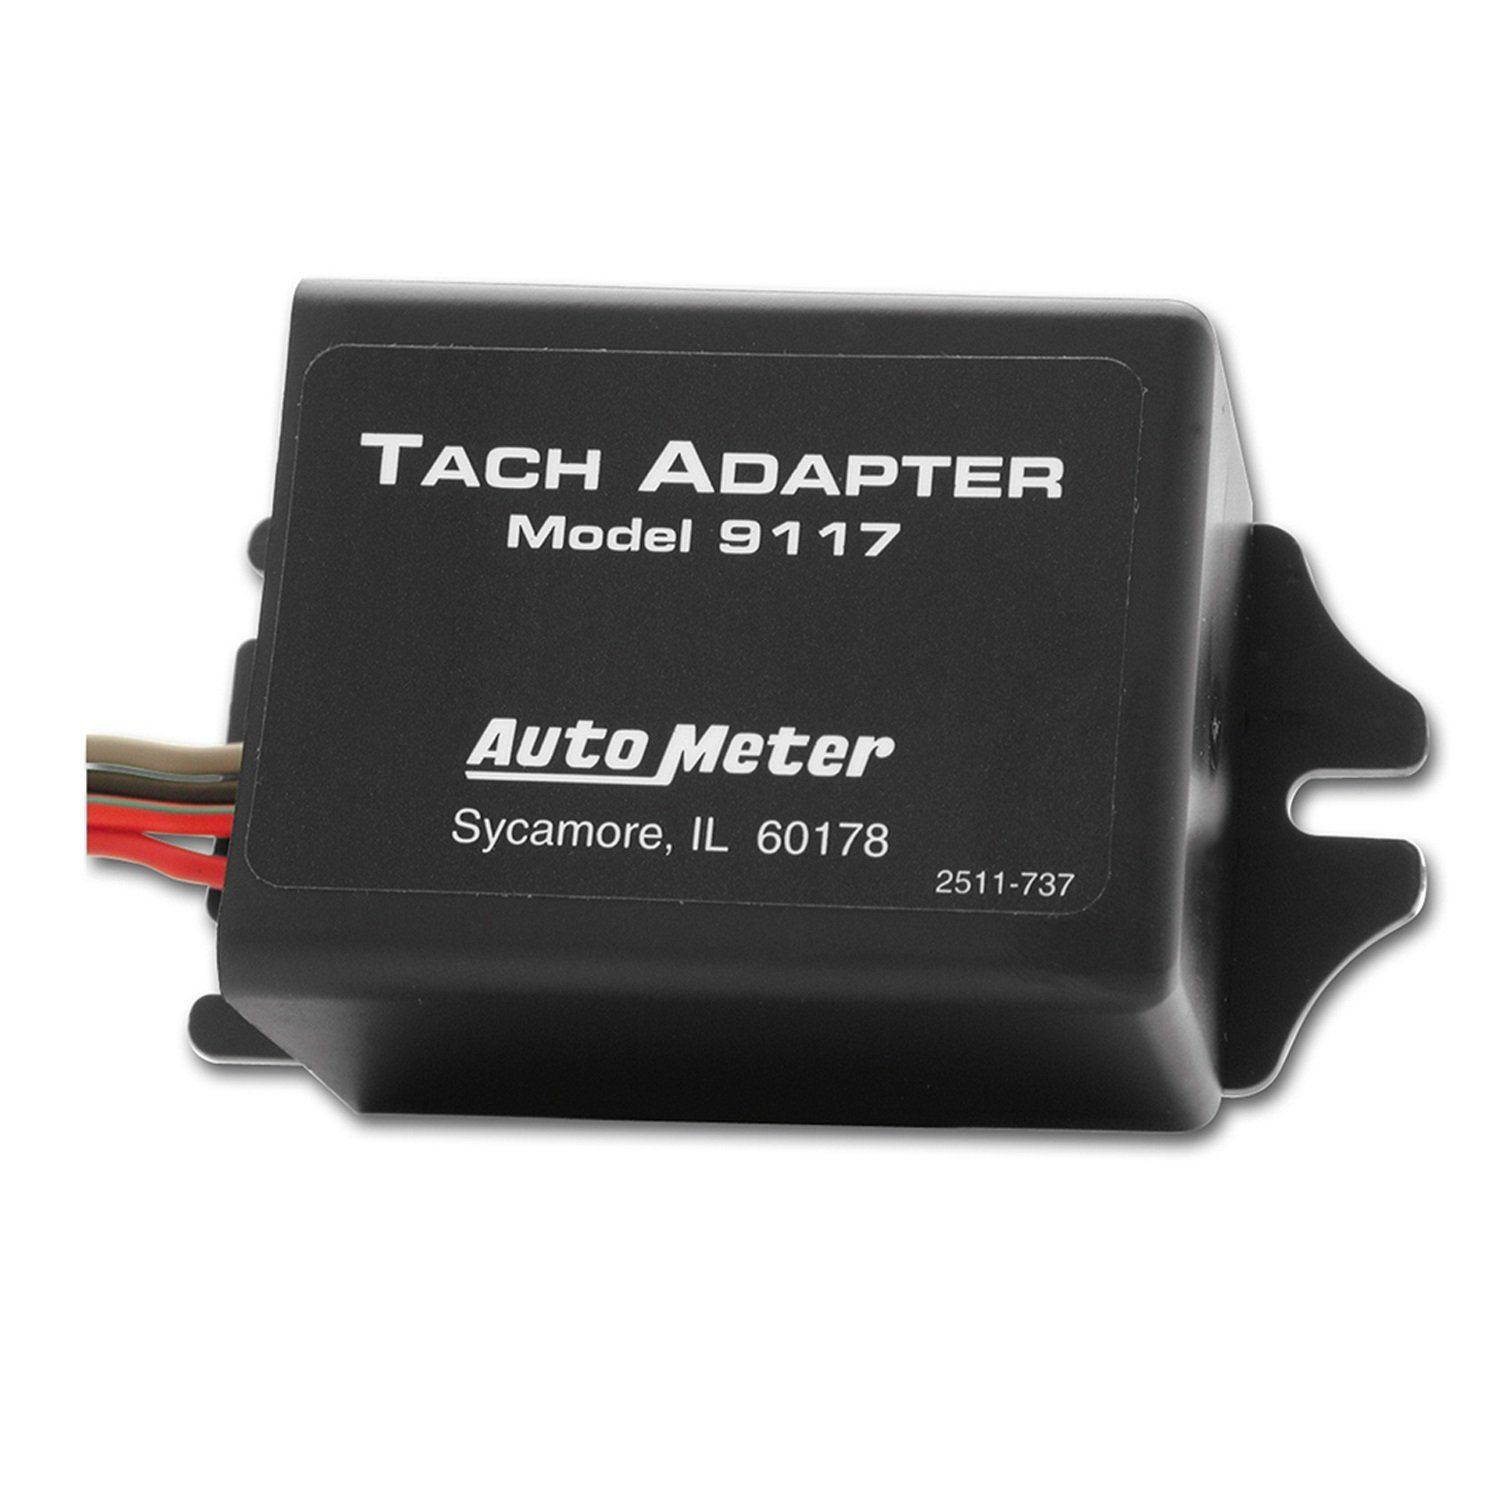 Wiring Diagram For Autometer Tach Collection Autometer Tachometer